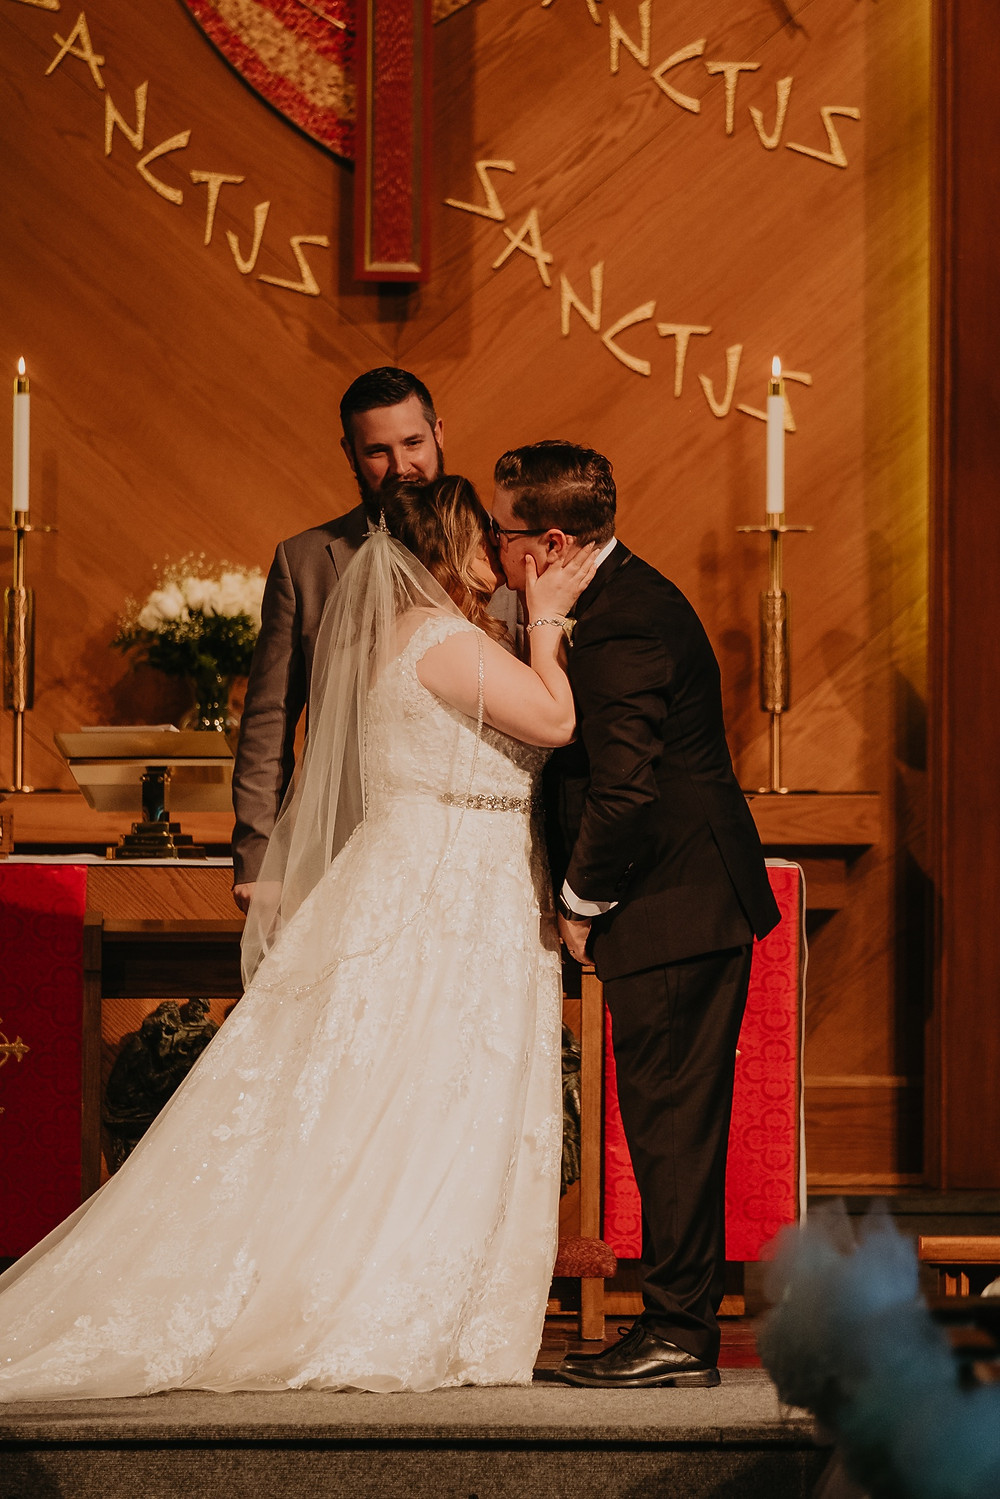 Church wedding ceremony in Metro Detroit. Photographed by Nicole Leanne Photography.